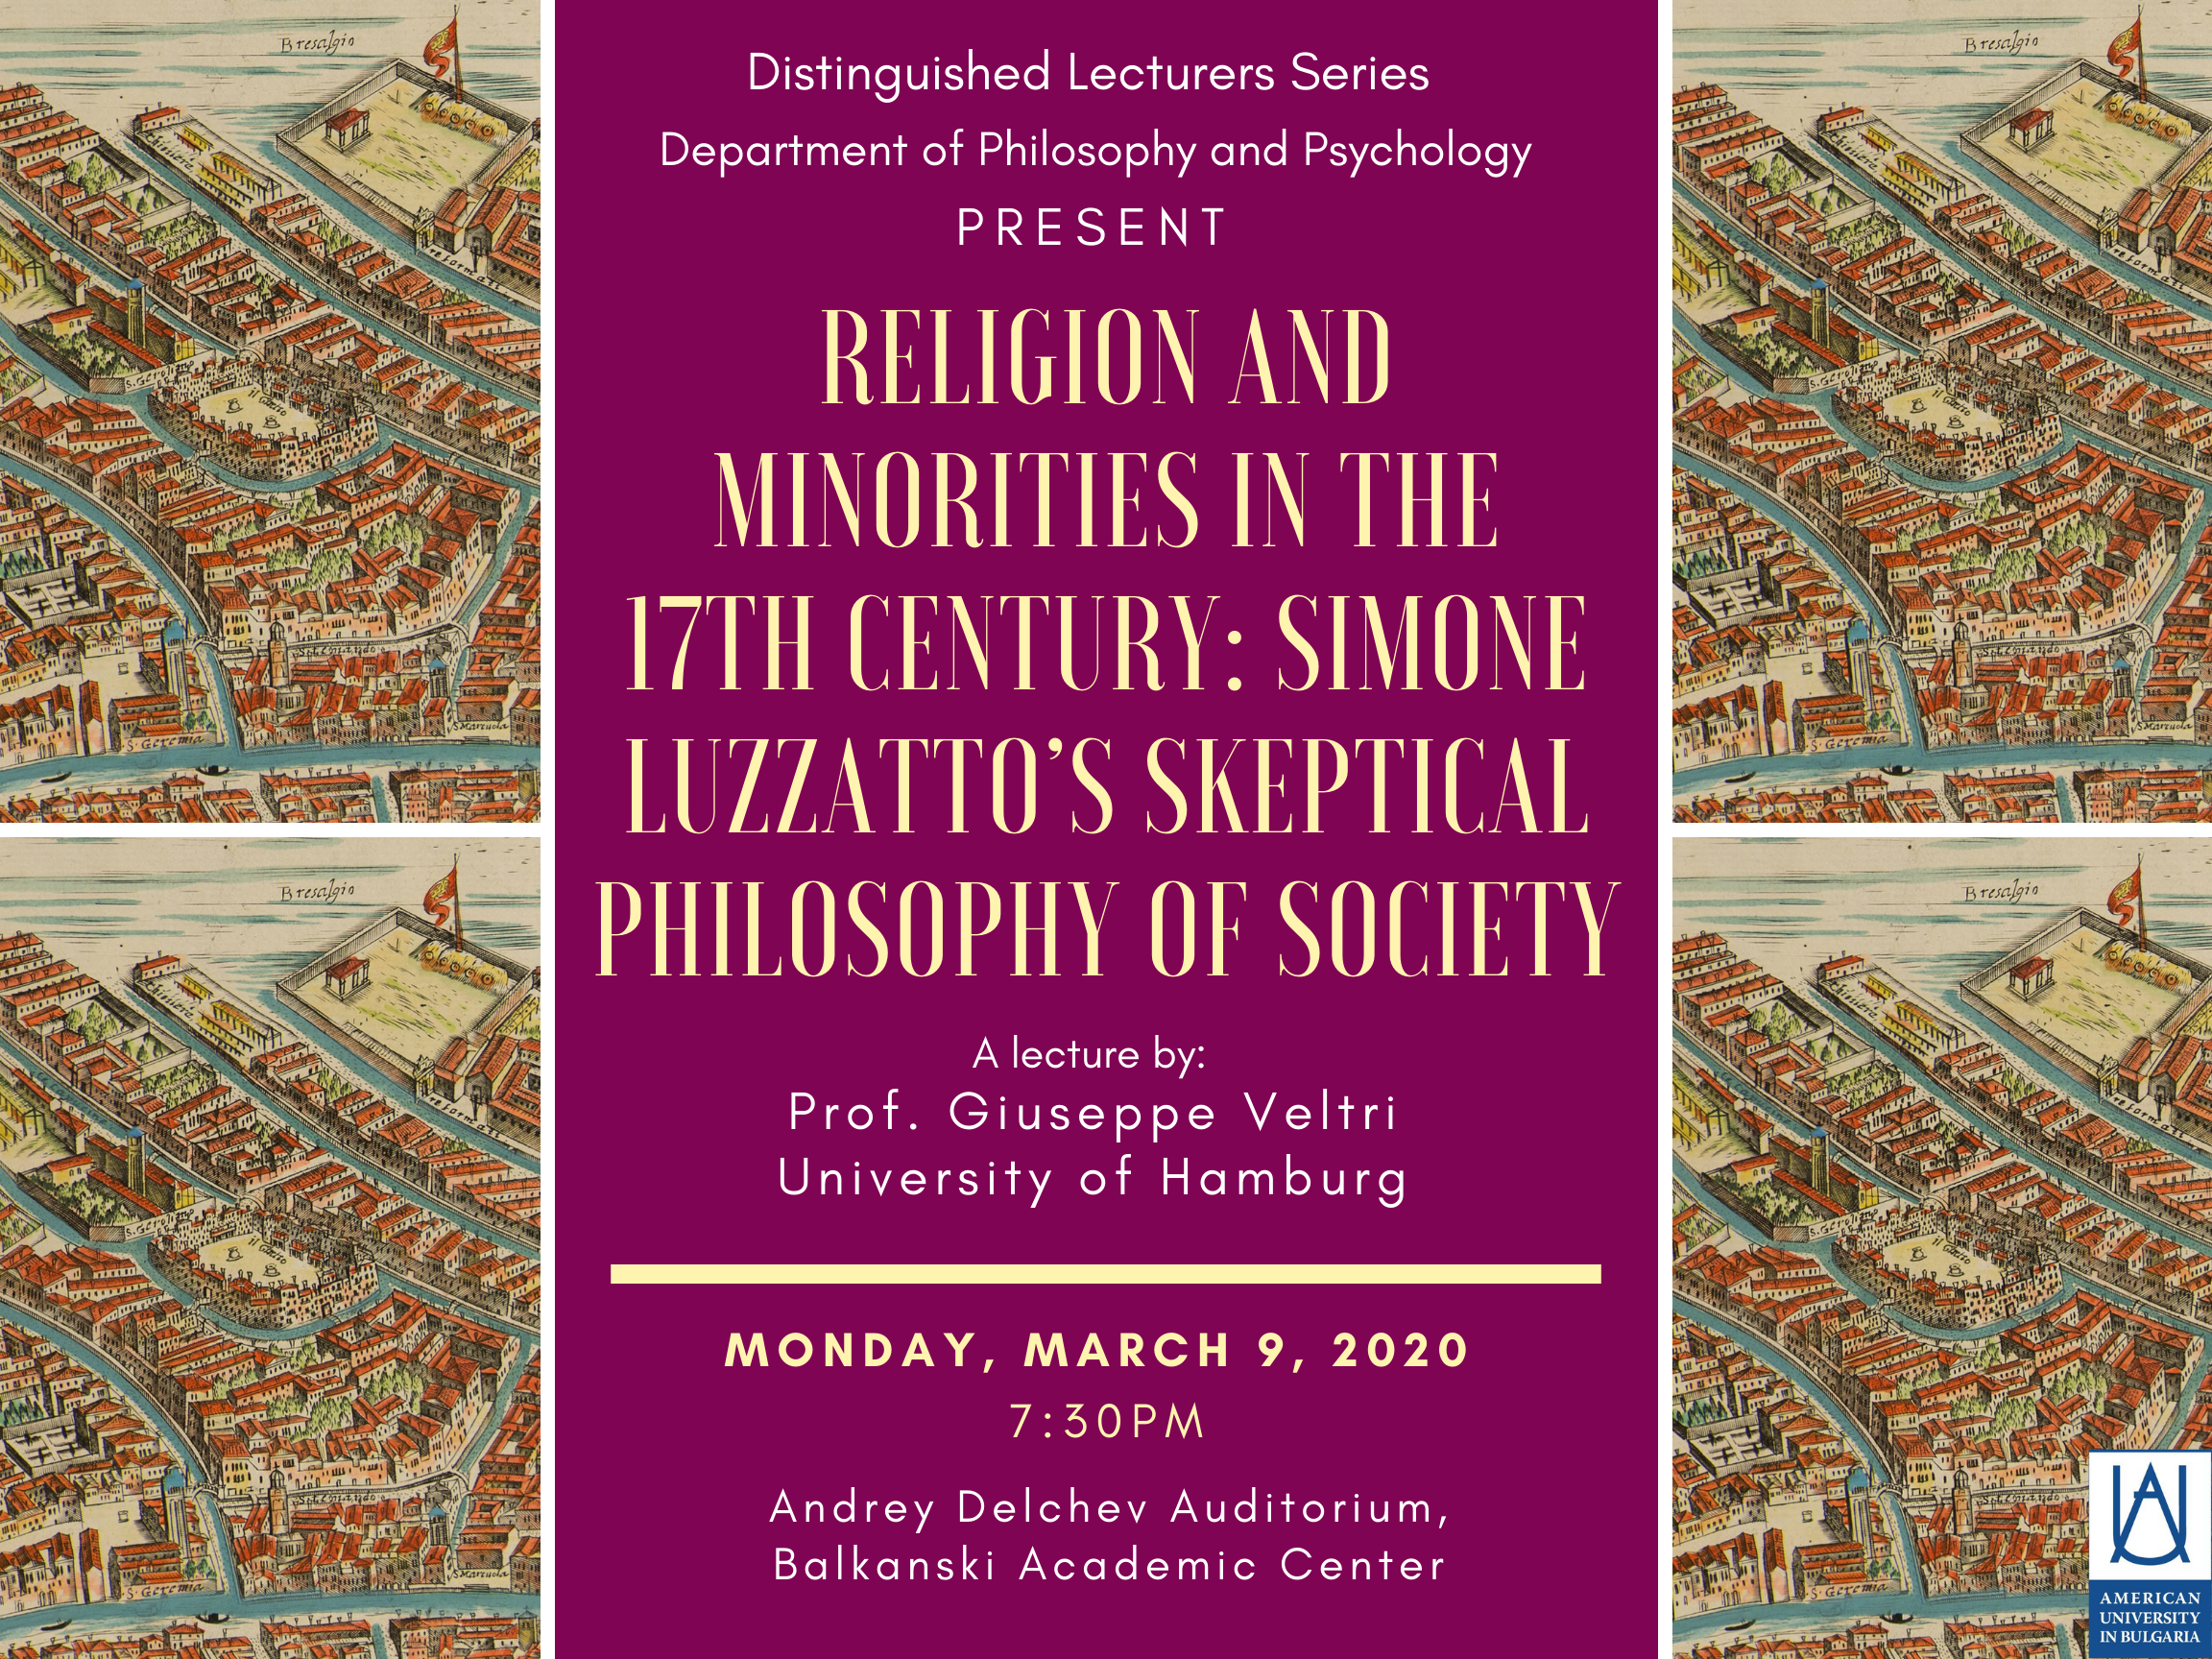 Religion and Minorities in the 17th Century: Simone Luzzatto's Skeptical Philosophy of Society